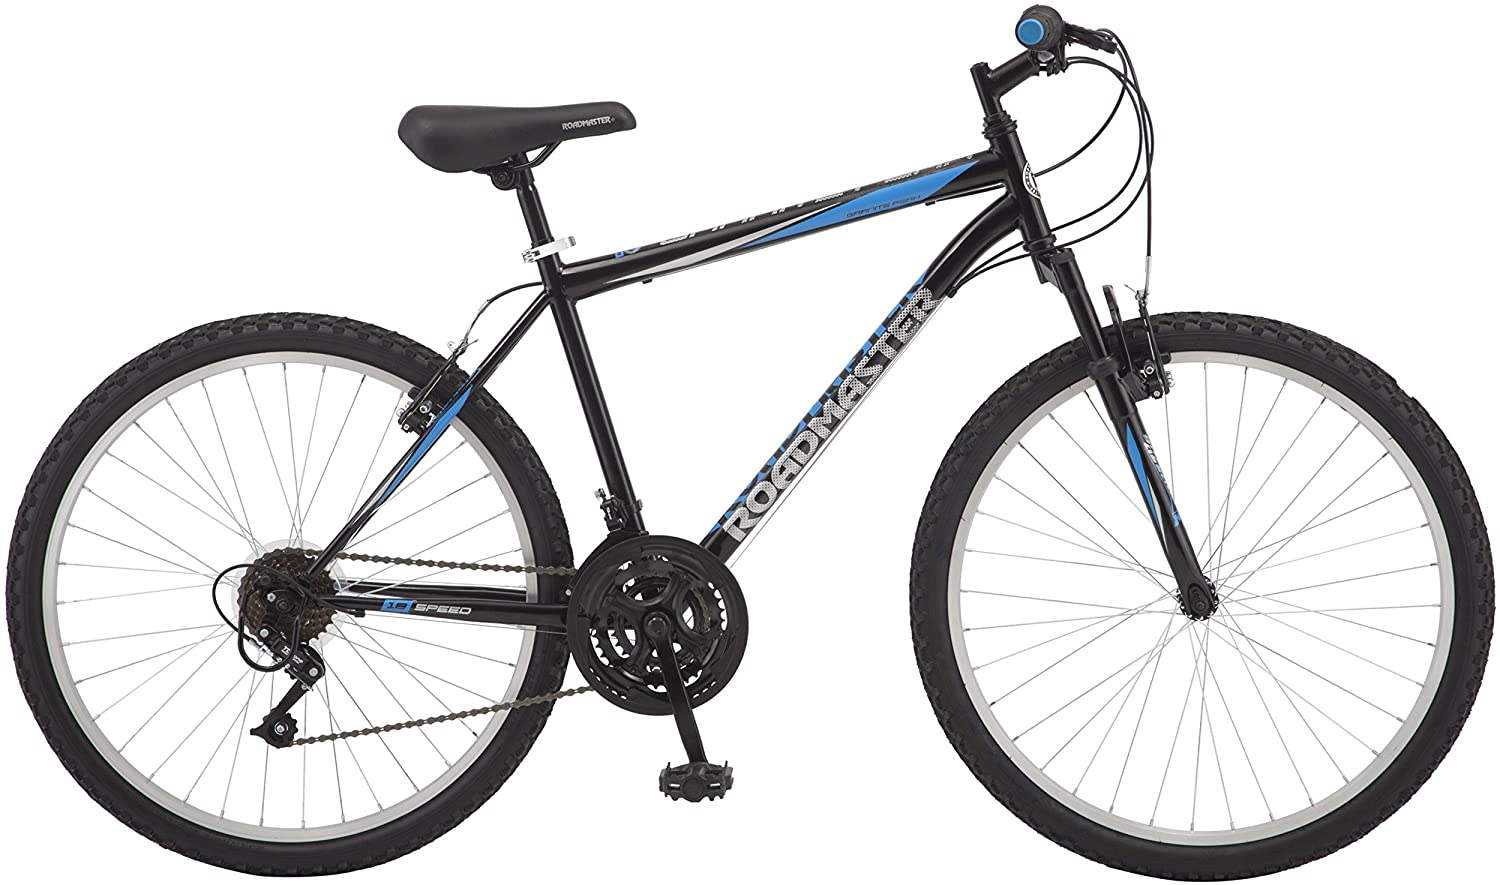 81Q0 AfqNtL. AC SL1500 15 Best Cheap Mountain Bikes - Compare Prices & Features